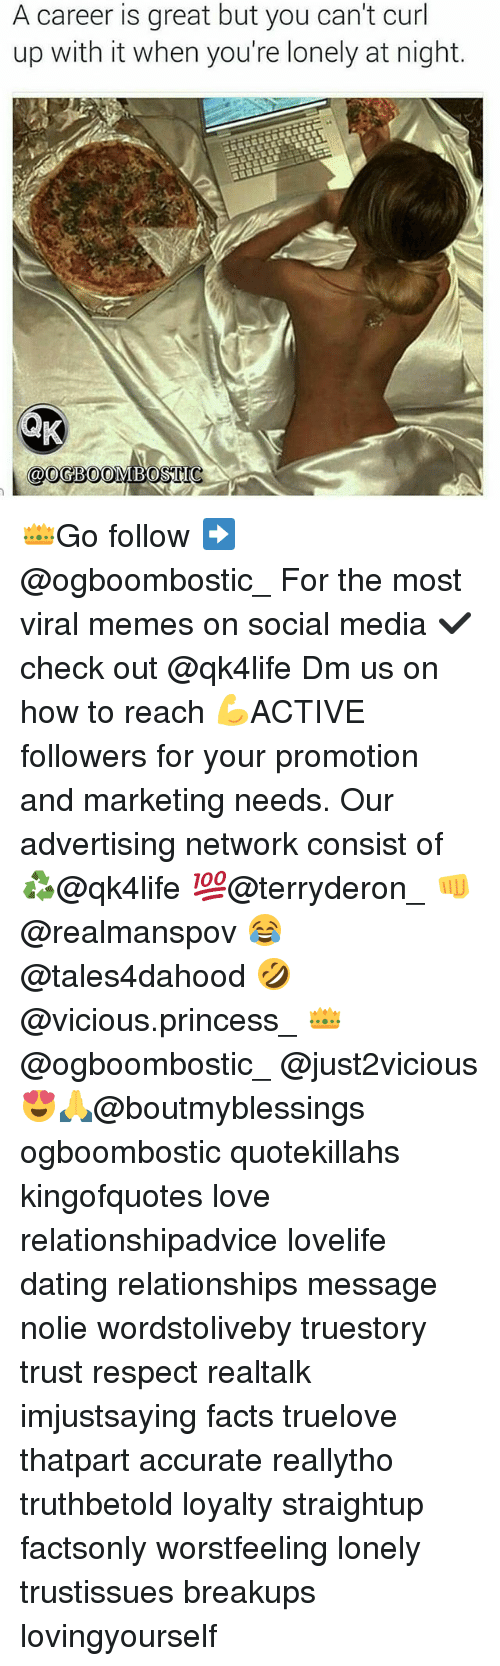 Dating, Facts, and Love: A career is great but you can't curl  up with it when you're lonely at night. 👑Go follow ➡@ogboombostic_ For the most viral memes on social media ✔check out @qk4life Dm us on how to reach 💪ACTIVE followers for your promotion and marketing needs. Our advertising network consist of ♻@qk4life 💯@terryderon_ 👊@realmanspov 😂@tales4dahood 🤣@vicious.princess_ 👑@ogboombostic_ @just2vicious😍🙏@boutmyblessings ogboombostic quotekillahs kingofquotes love relationshipadvice lovelife dating relationships message nolie wordstoliveby truestory trust respect realtalk imjustsaying facts truelove thatpart accurate reallytho truthbetold loyalty straightup factsonly worstfeeling lonely trustissues breakups lovingyourself